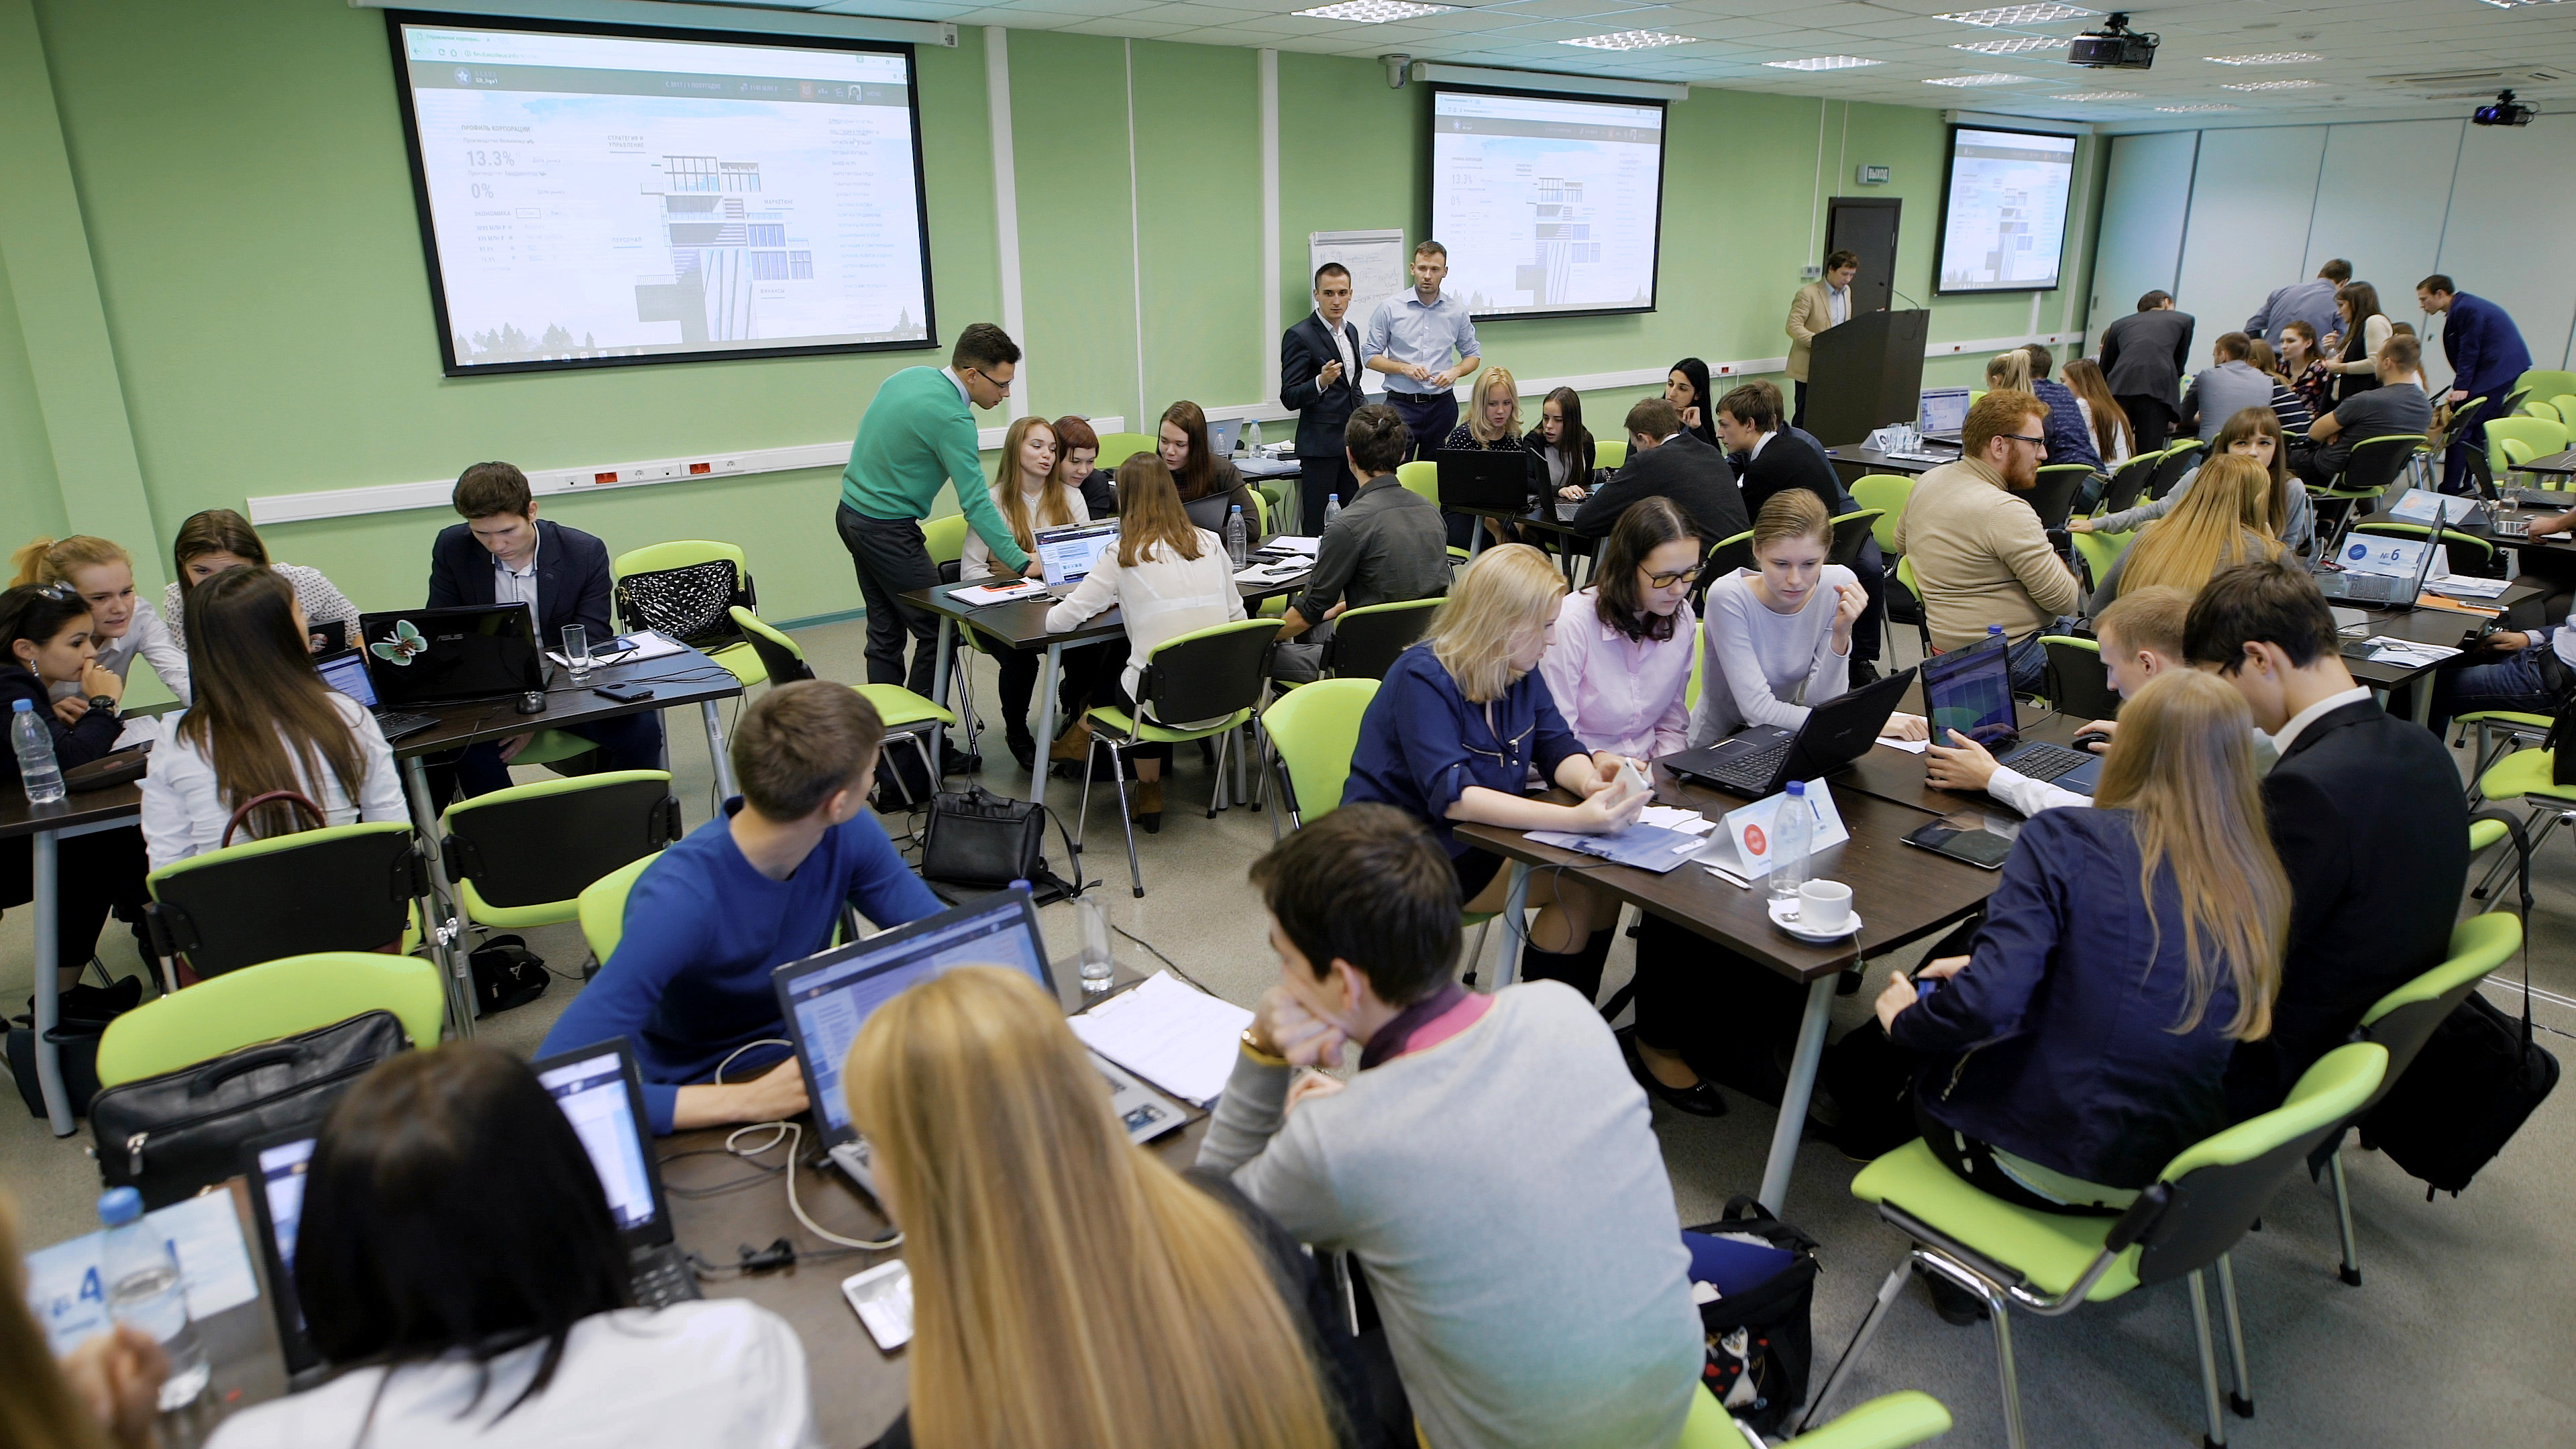 Teacher and Students using active learning in classroom